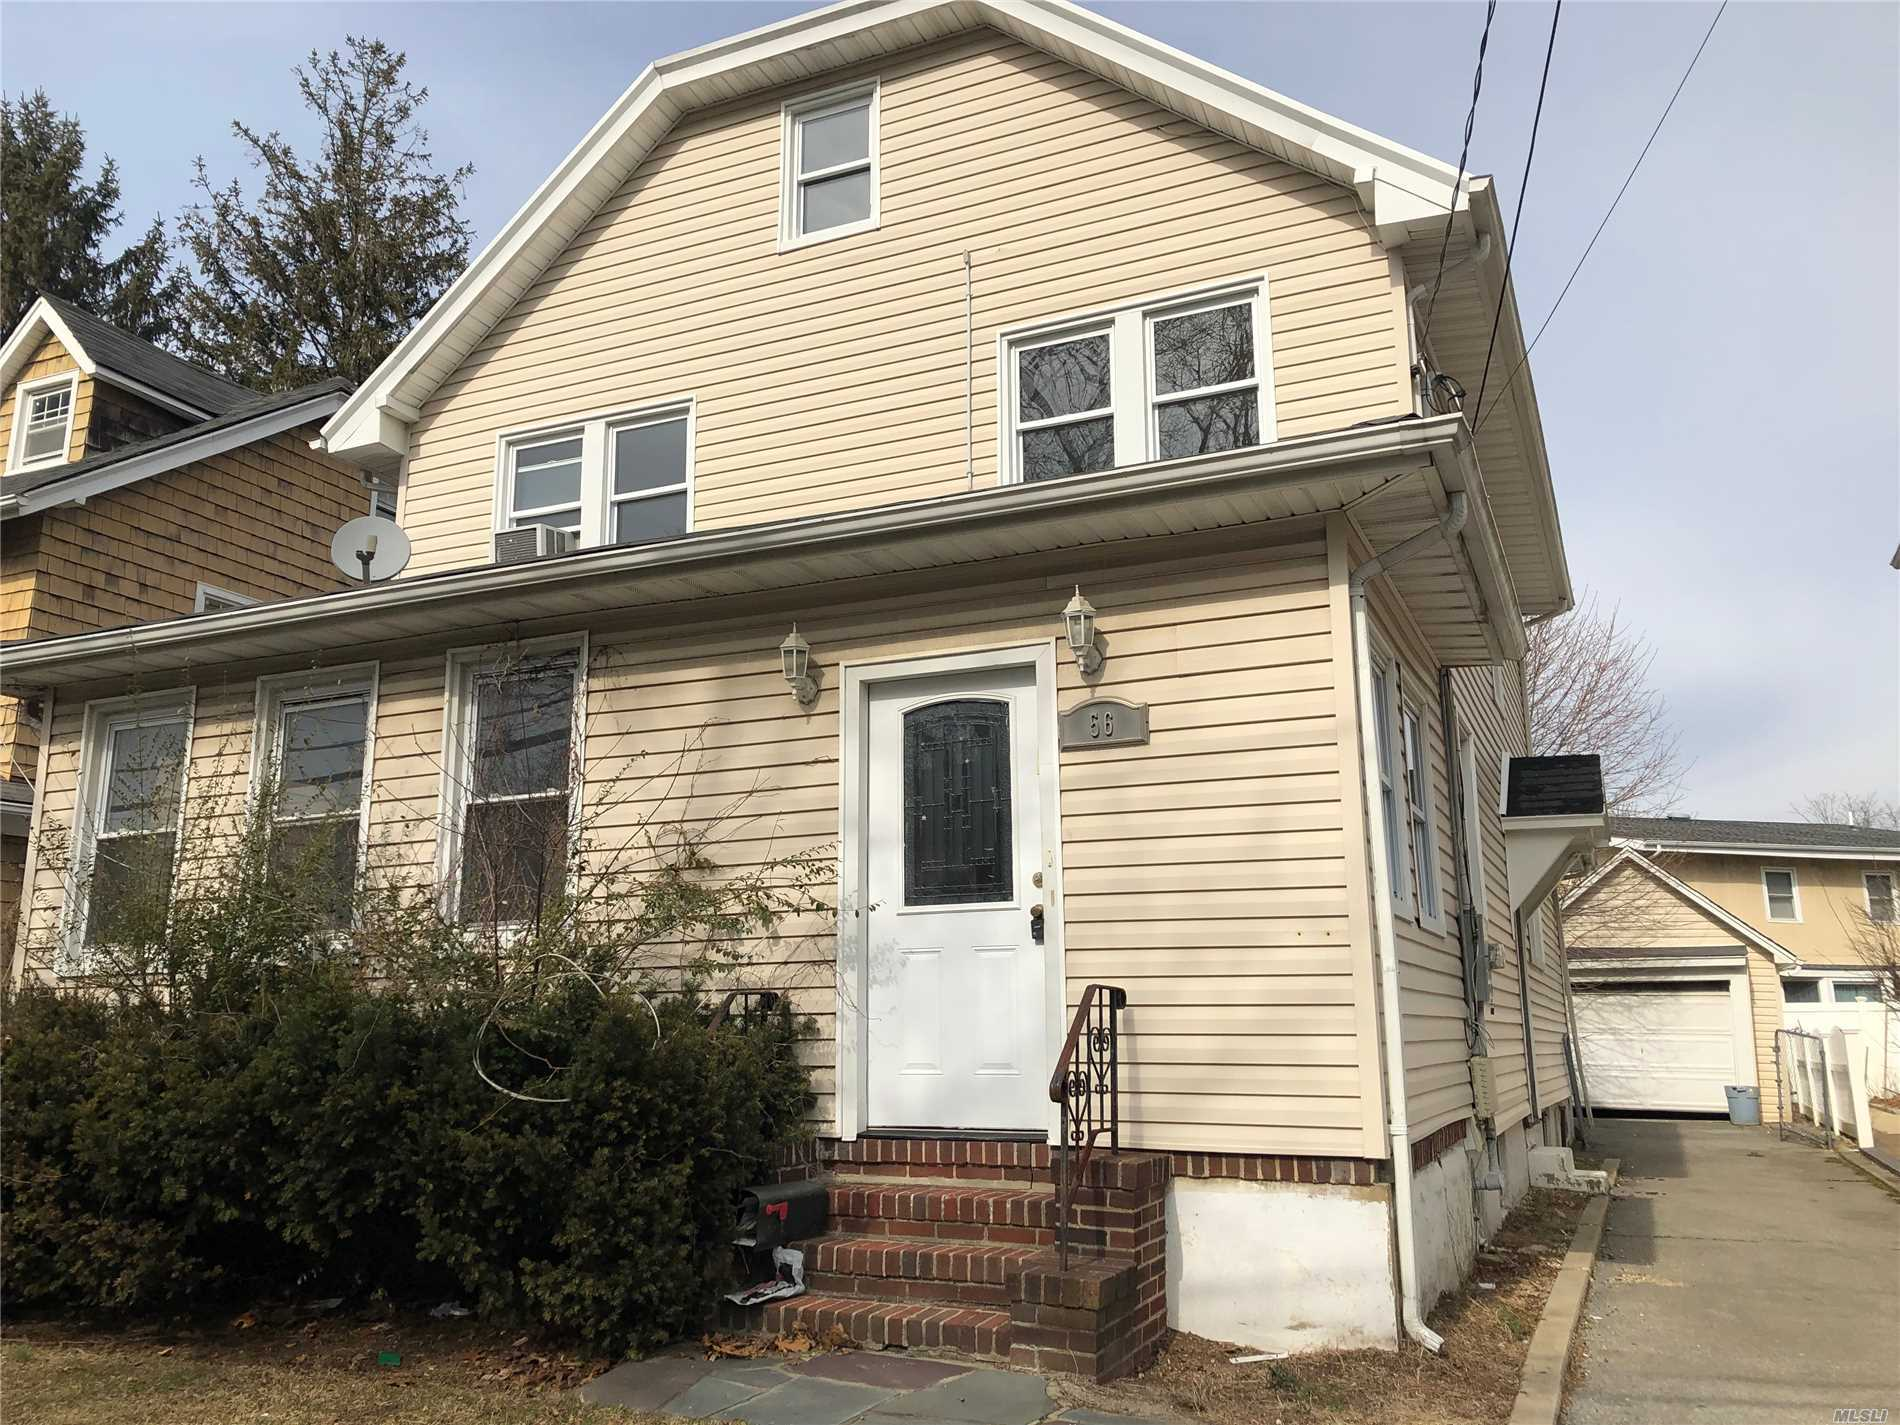 Lovely 3 Bedroom Side Hall Colonial W/Eik, Formal Dining Rm, Den. Finished Attic. Hardwood Floors Throughout. Semi Finished Basement. Lr W/Fplc. Sd#14. Priced To Sell!!!